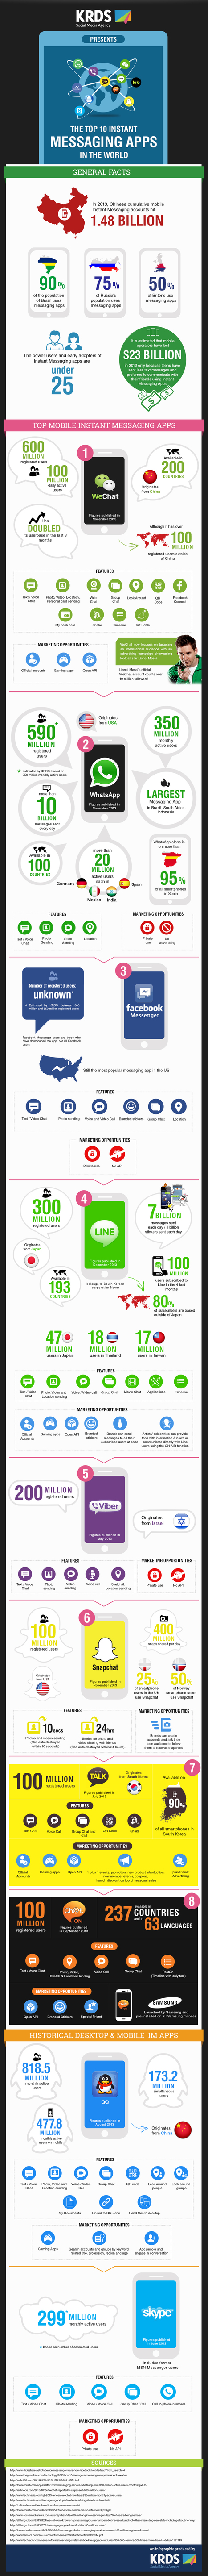 Infographic: the Top 10 Instant Messaging Apps in the world, by KRDS | Technologies numériques & Education | Scoop.it